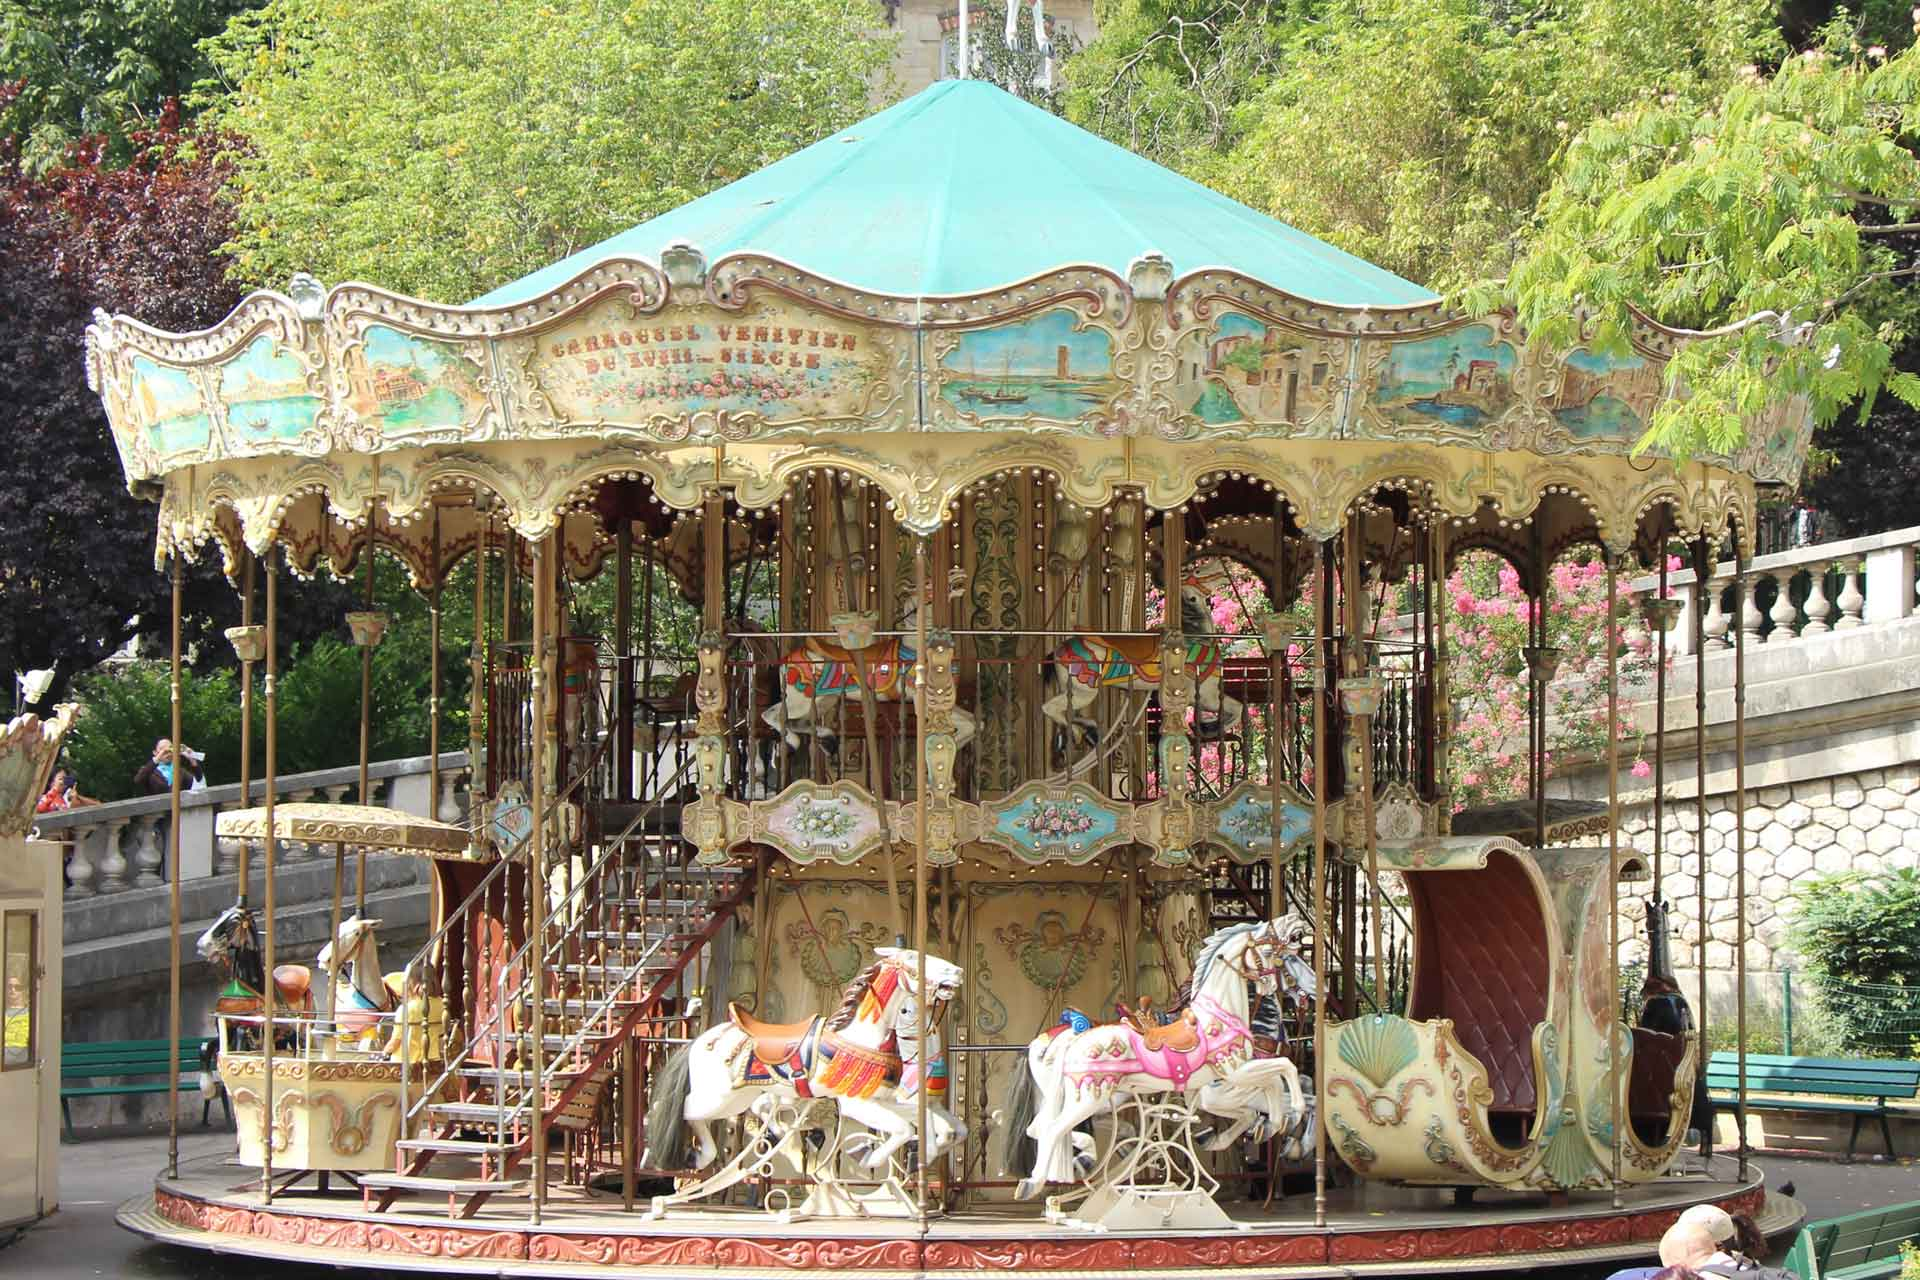 Carousel near Sacre Coeur in Paris